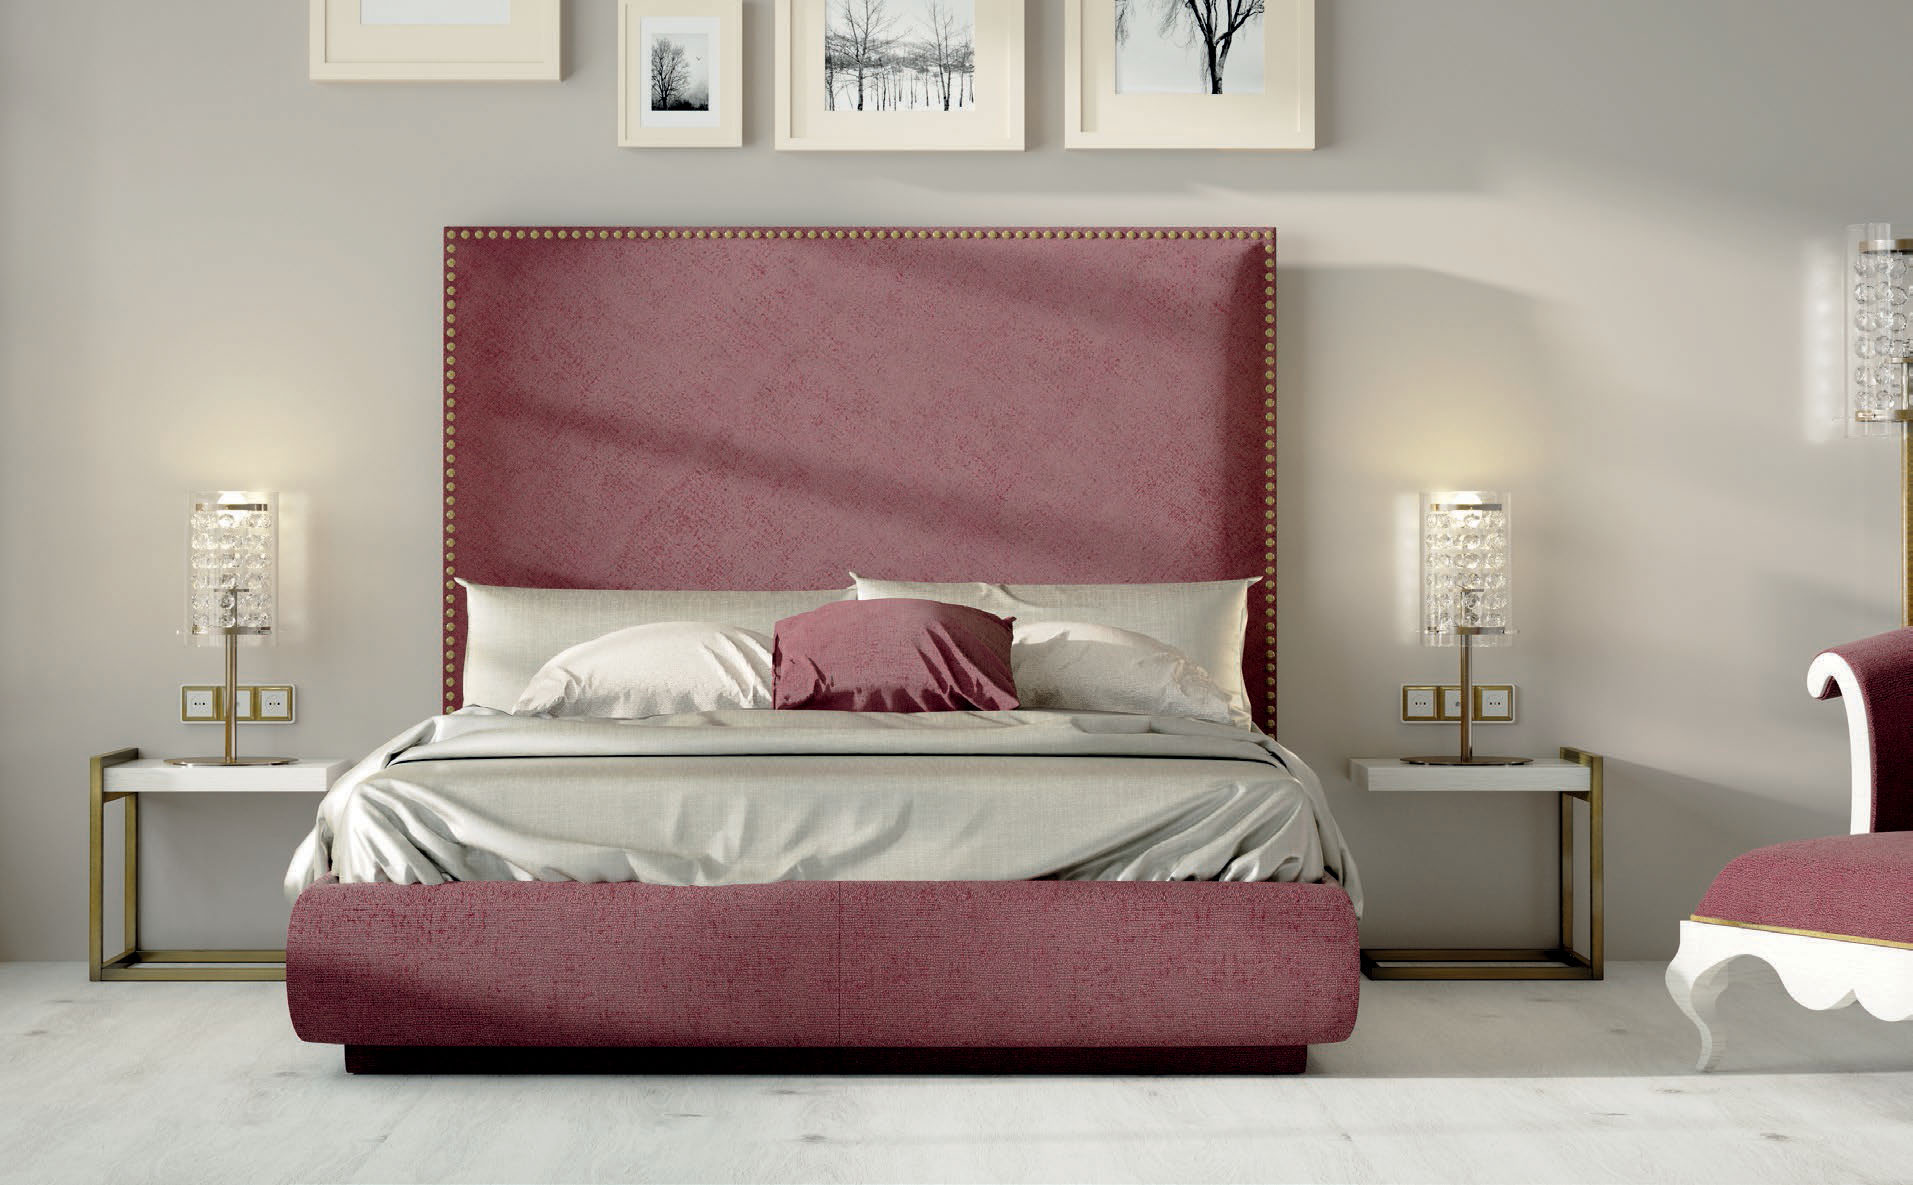 Brands Franco Furniture Bedrooms vol3, Spain DOR 153